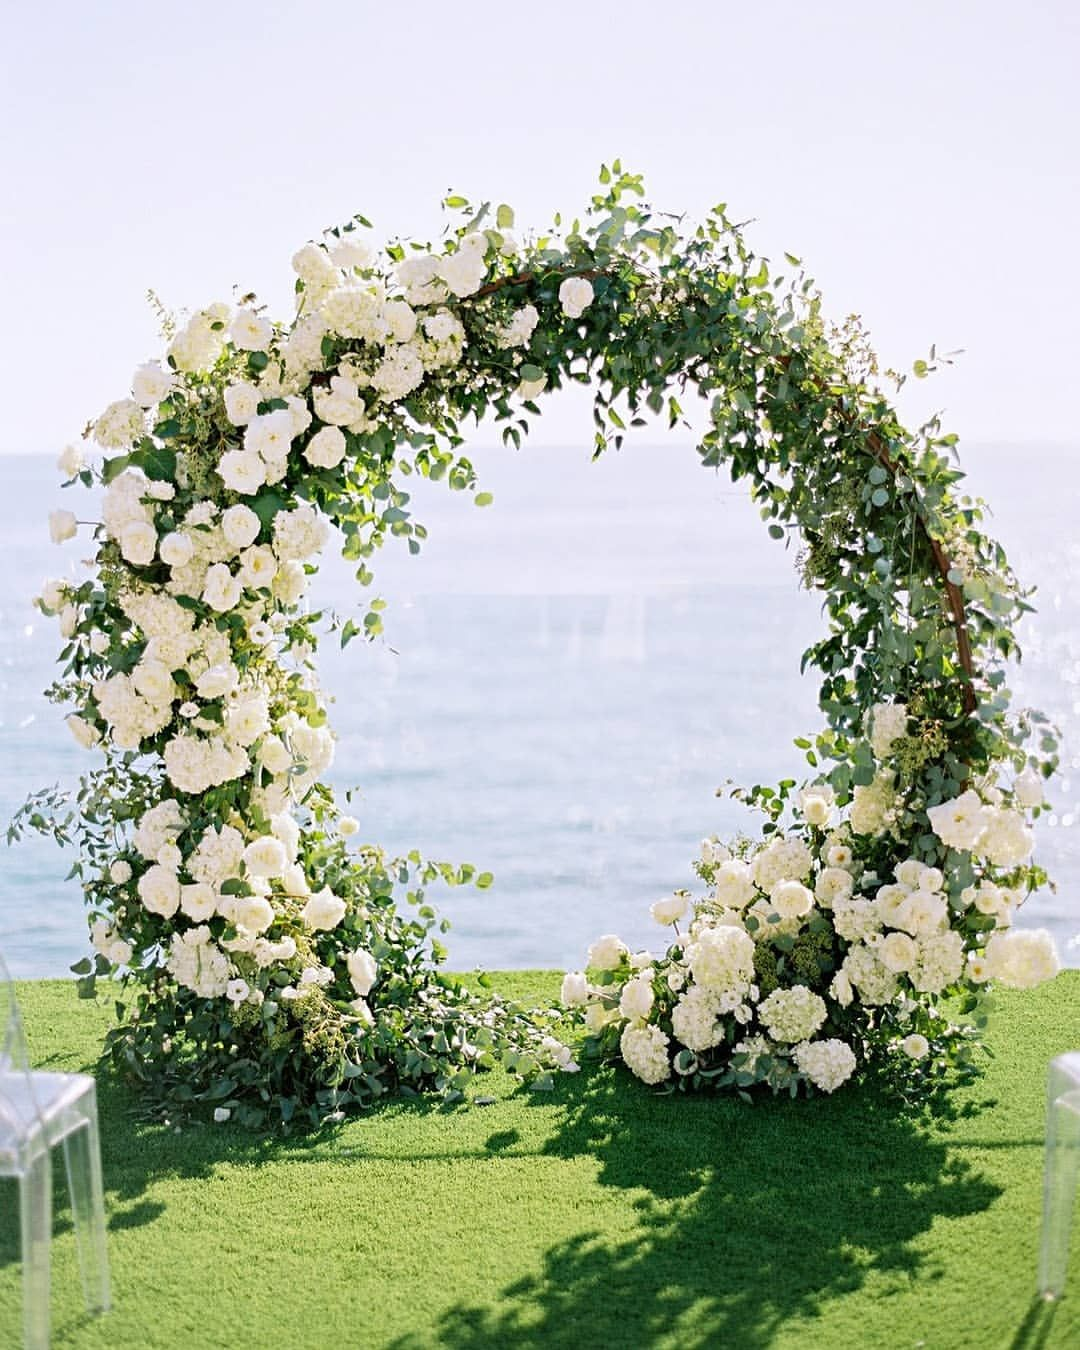 Flower Arch For Wedding: Major Heart Eyes For This Circular Floral Arch 😍😍😍 Double